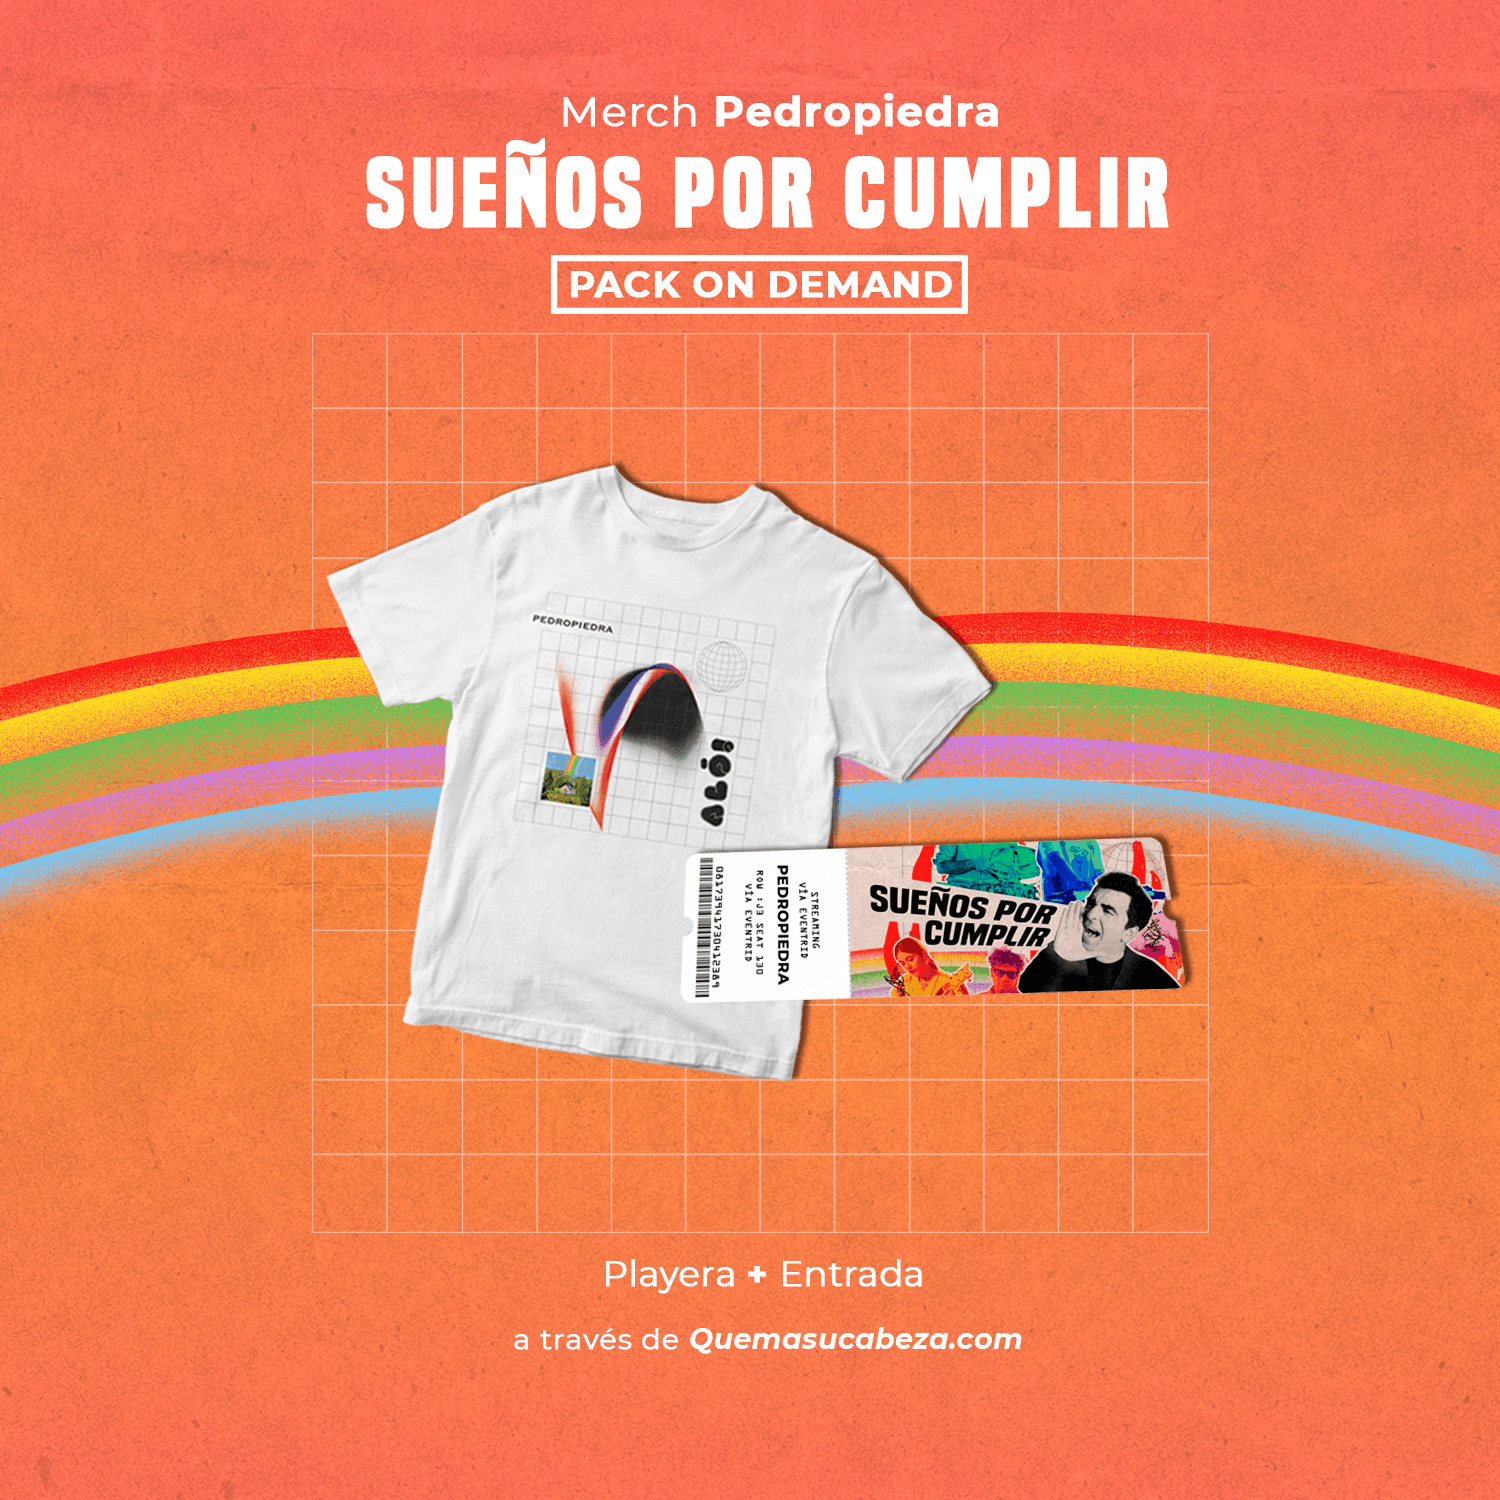 Playera + Entrada (PACK ON DEMAND!)